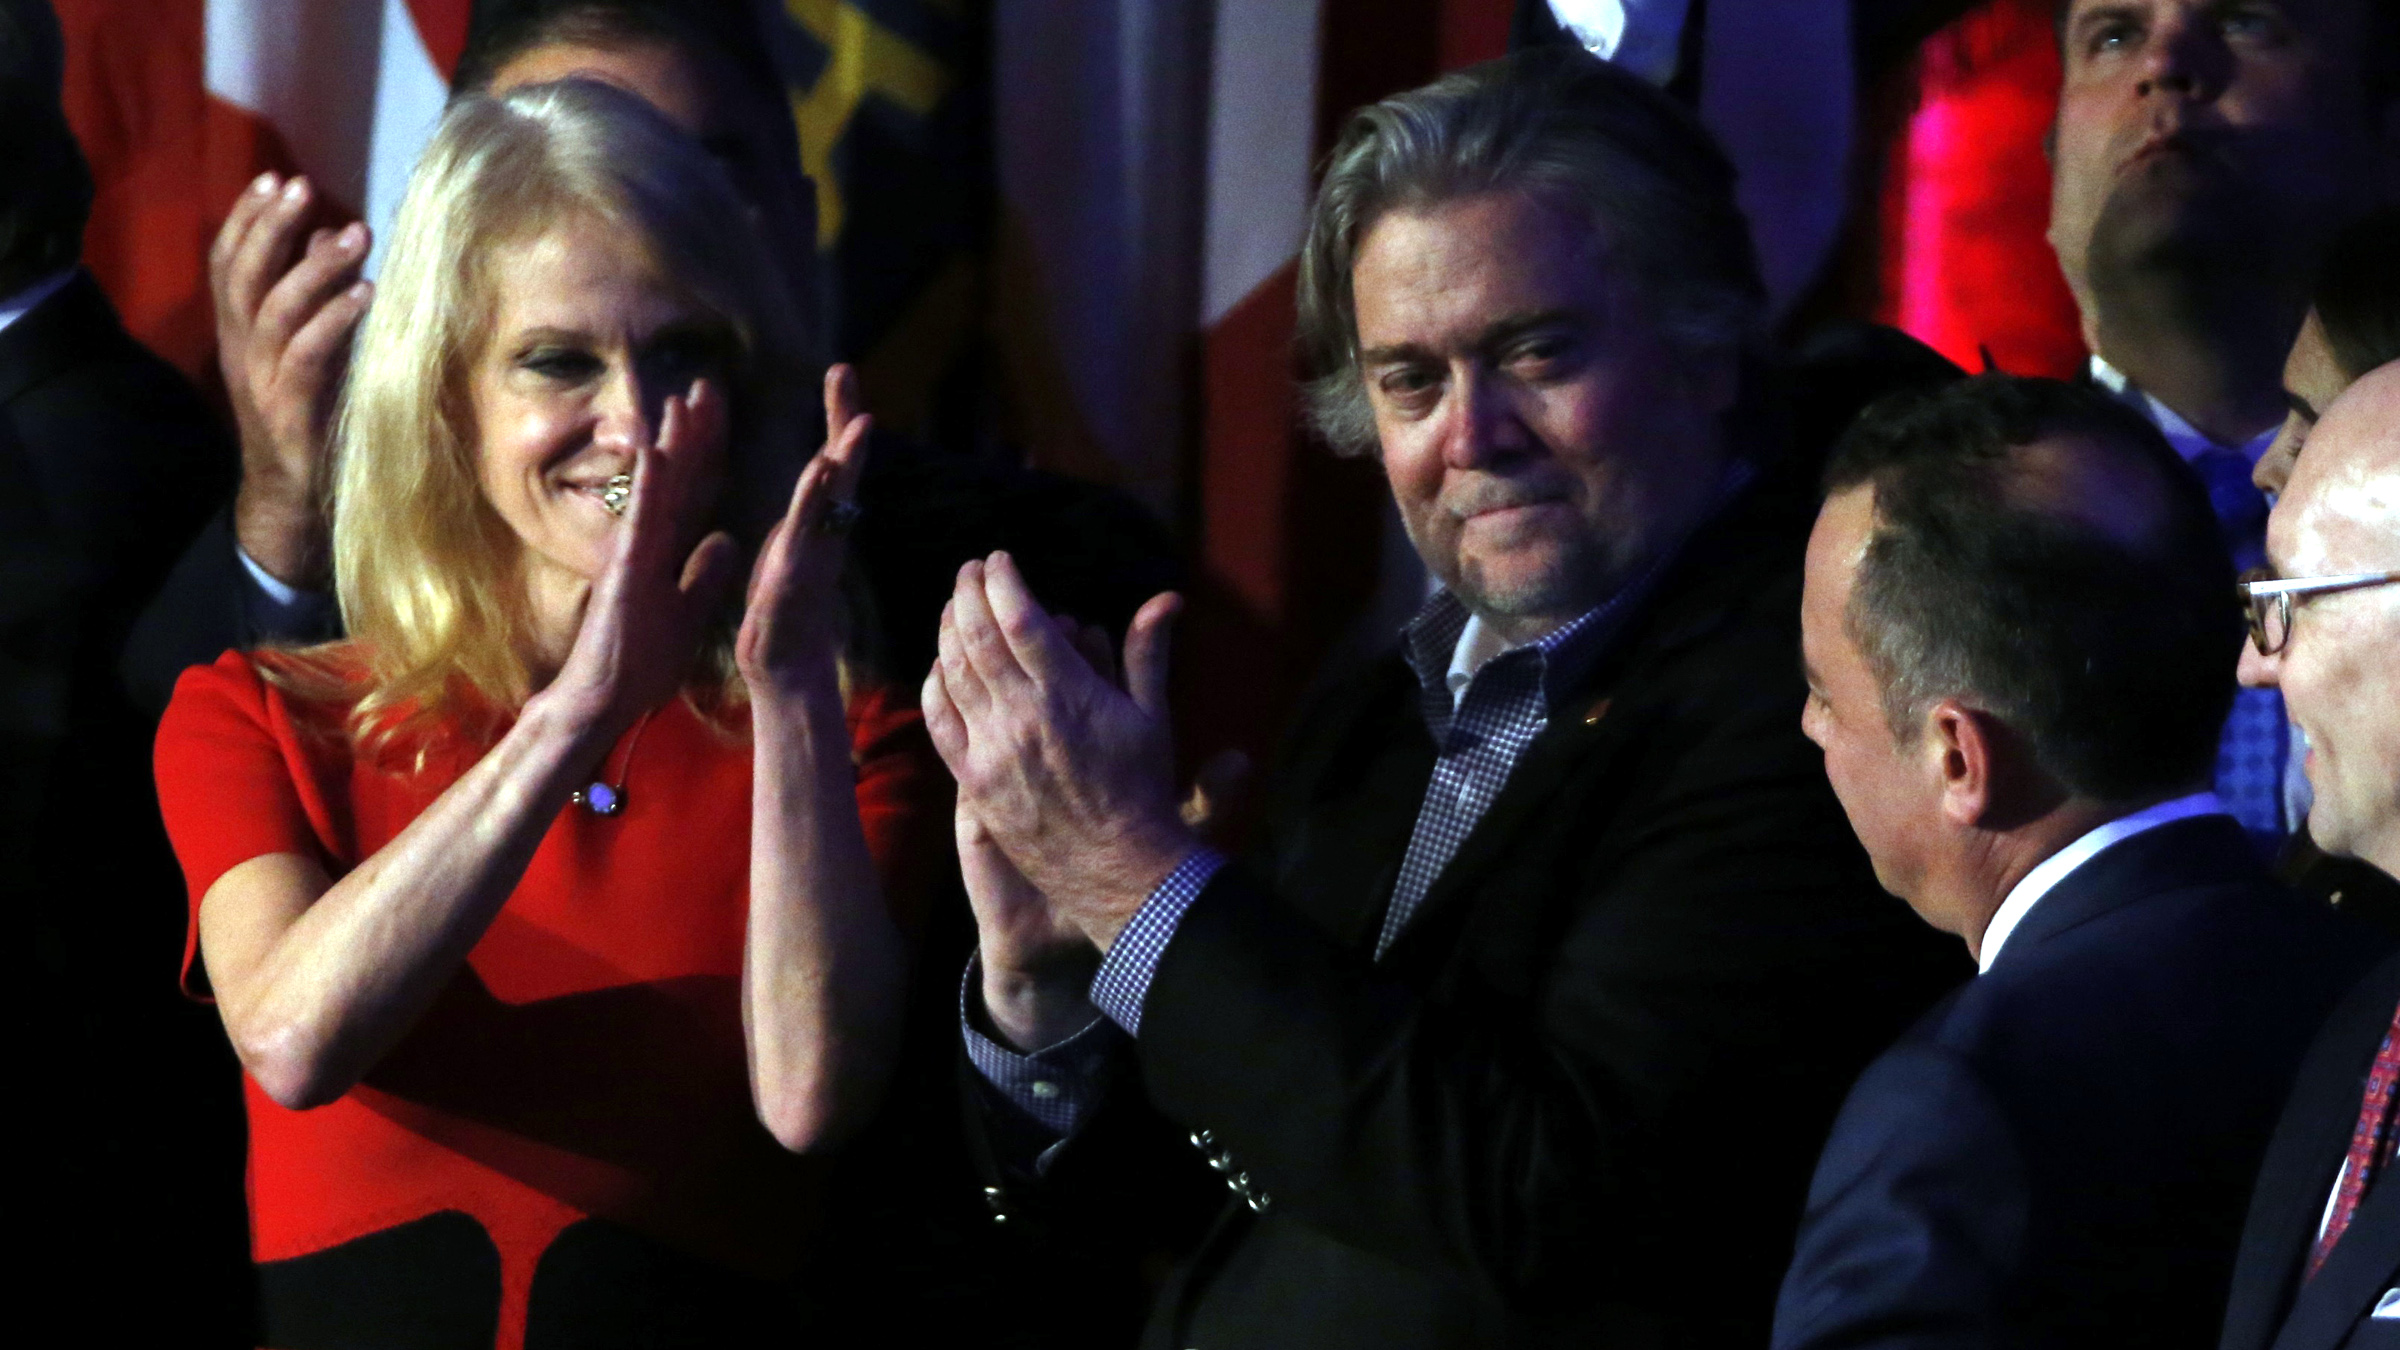 Trump campaign manager Kellyanne Conway (L), campaign CEO Stephen Bannon (C) and Republican National Committee Chair Reince Priebus (R) celebrate as Republican U.S. presidential nominee Donald Trump speaks at his election night rally in Manhattan, New York, U.S., November 9, 2016.